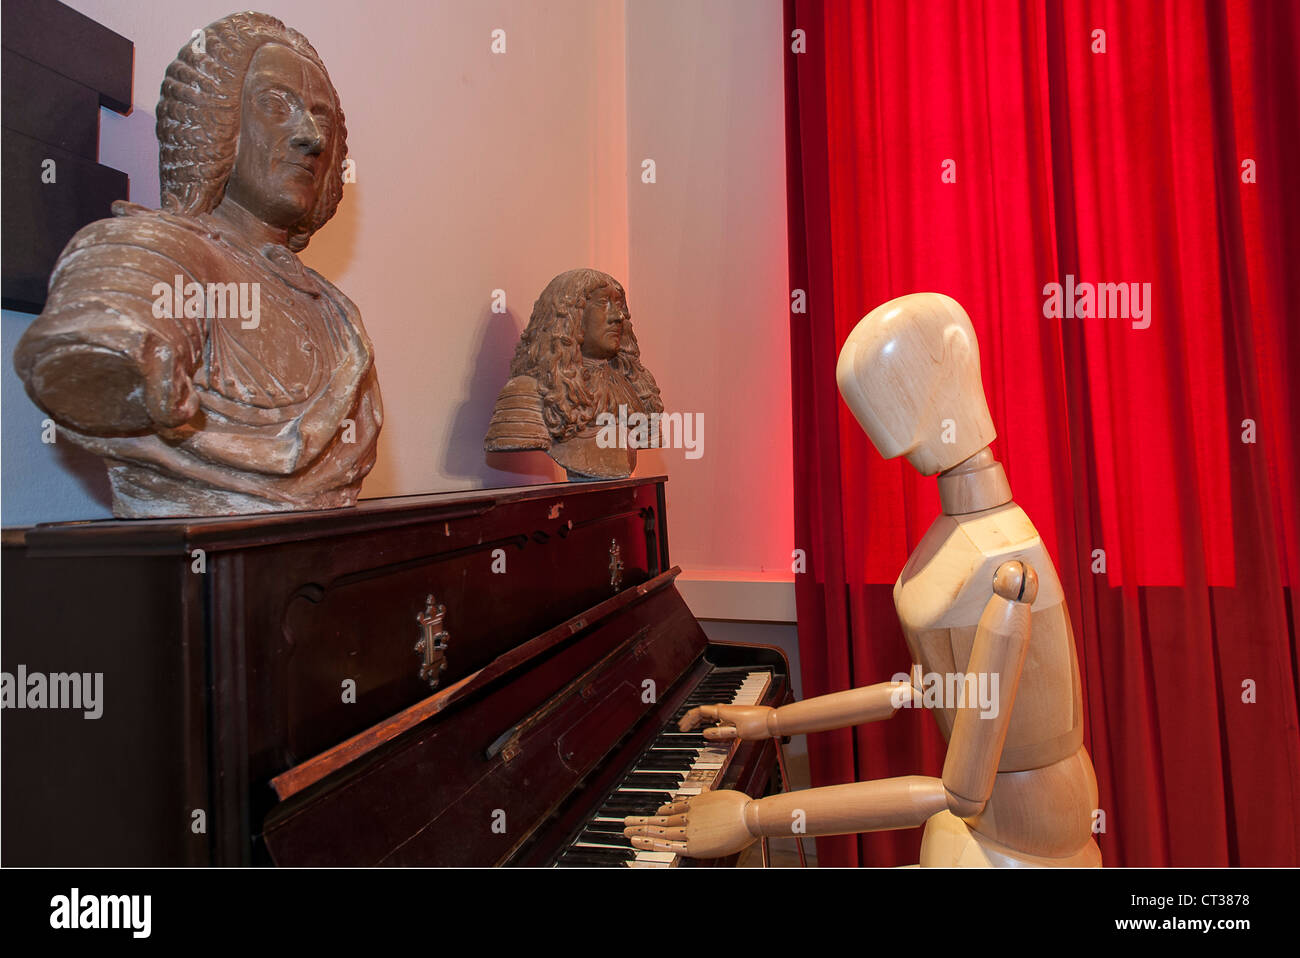 Europe Italy Piedmont Langhe Barolo Castle Wine Museum Mannequin playing piano in the lounge of the four seasons - Stock Image